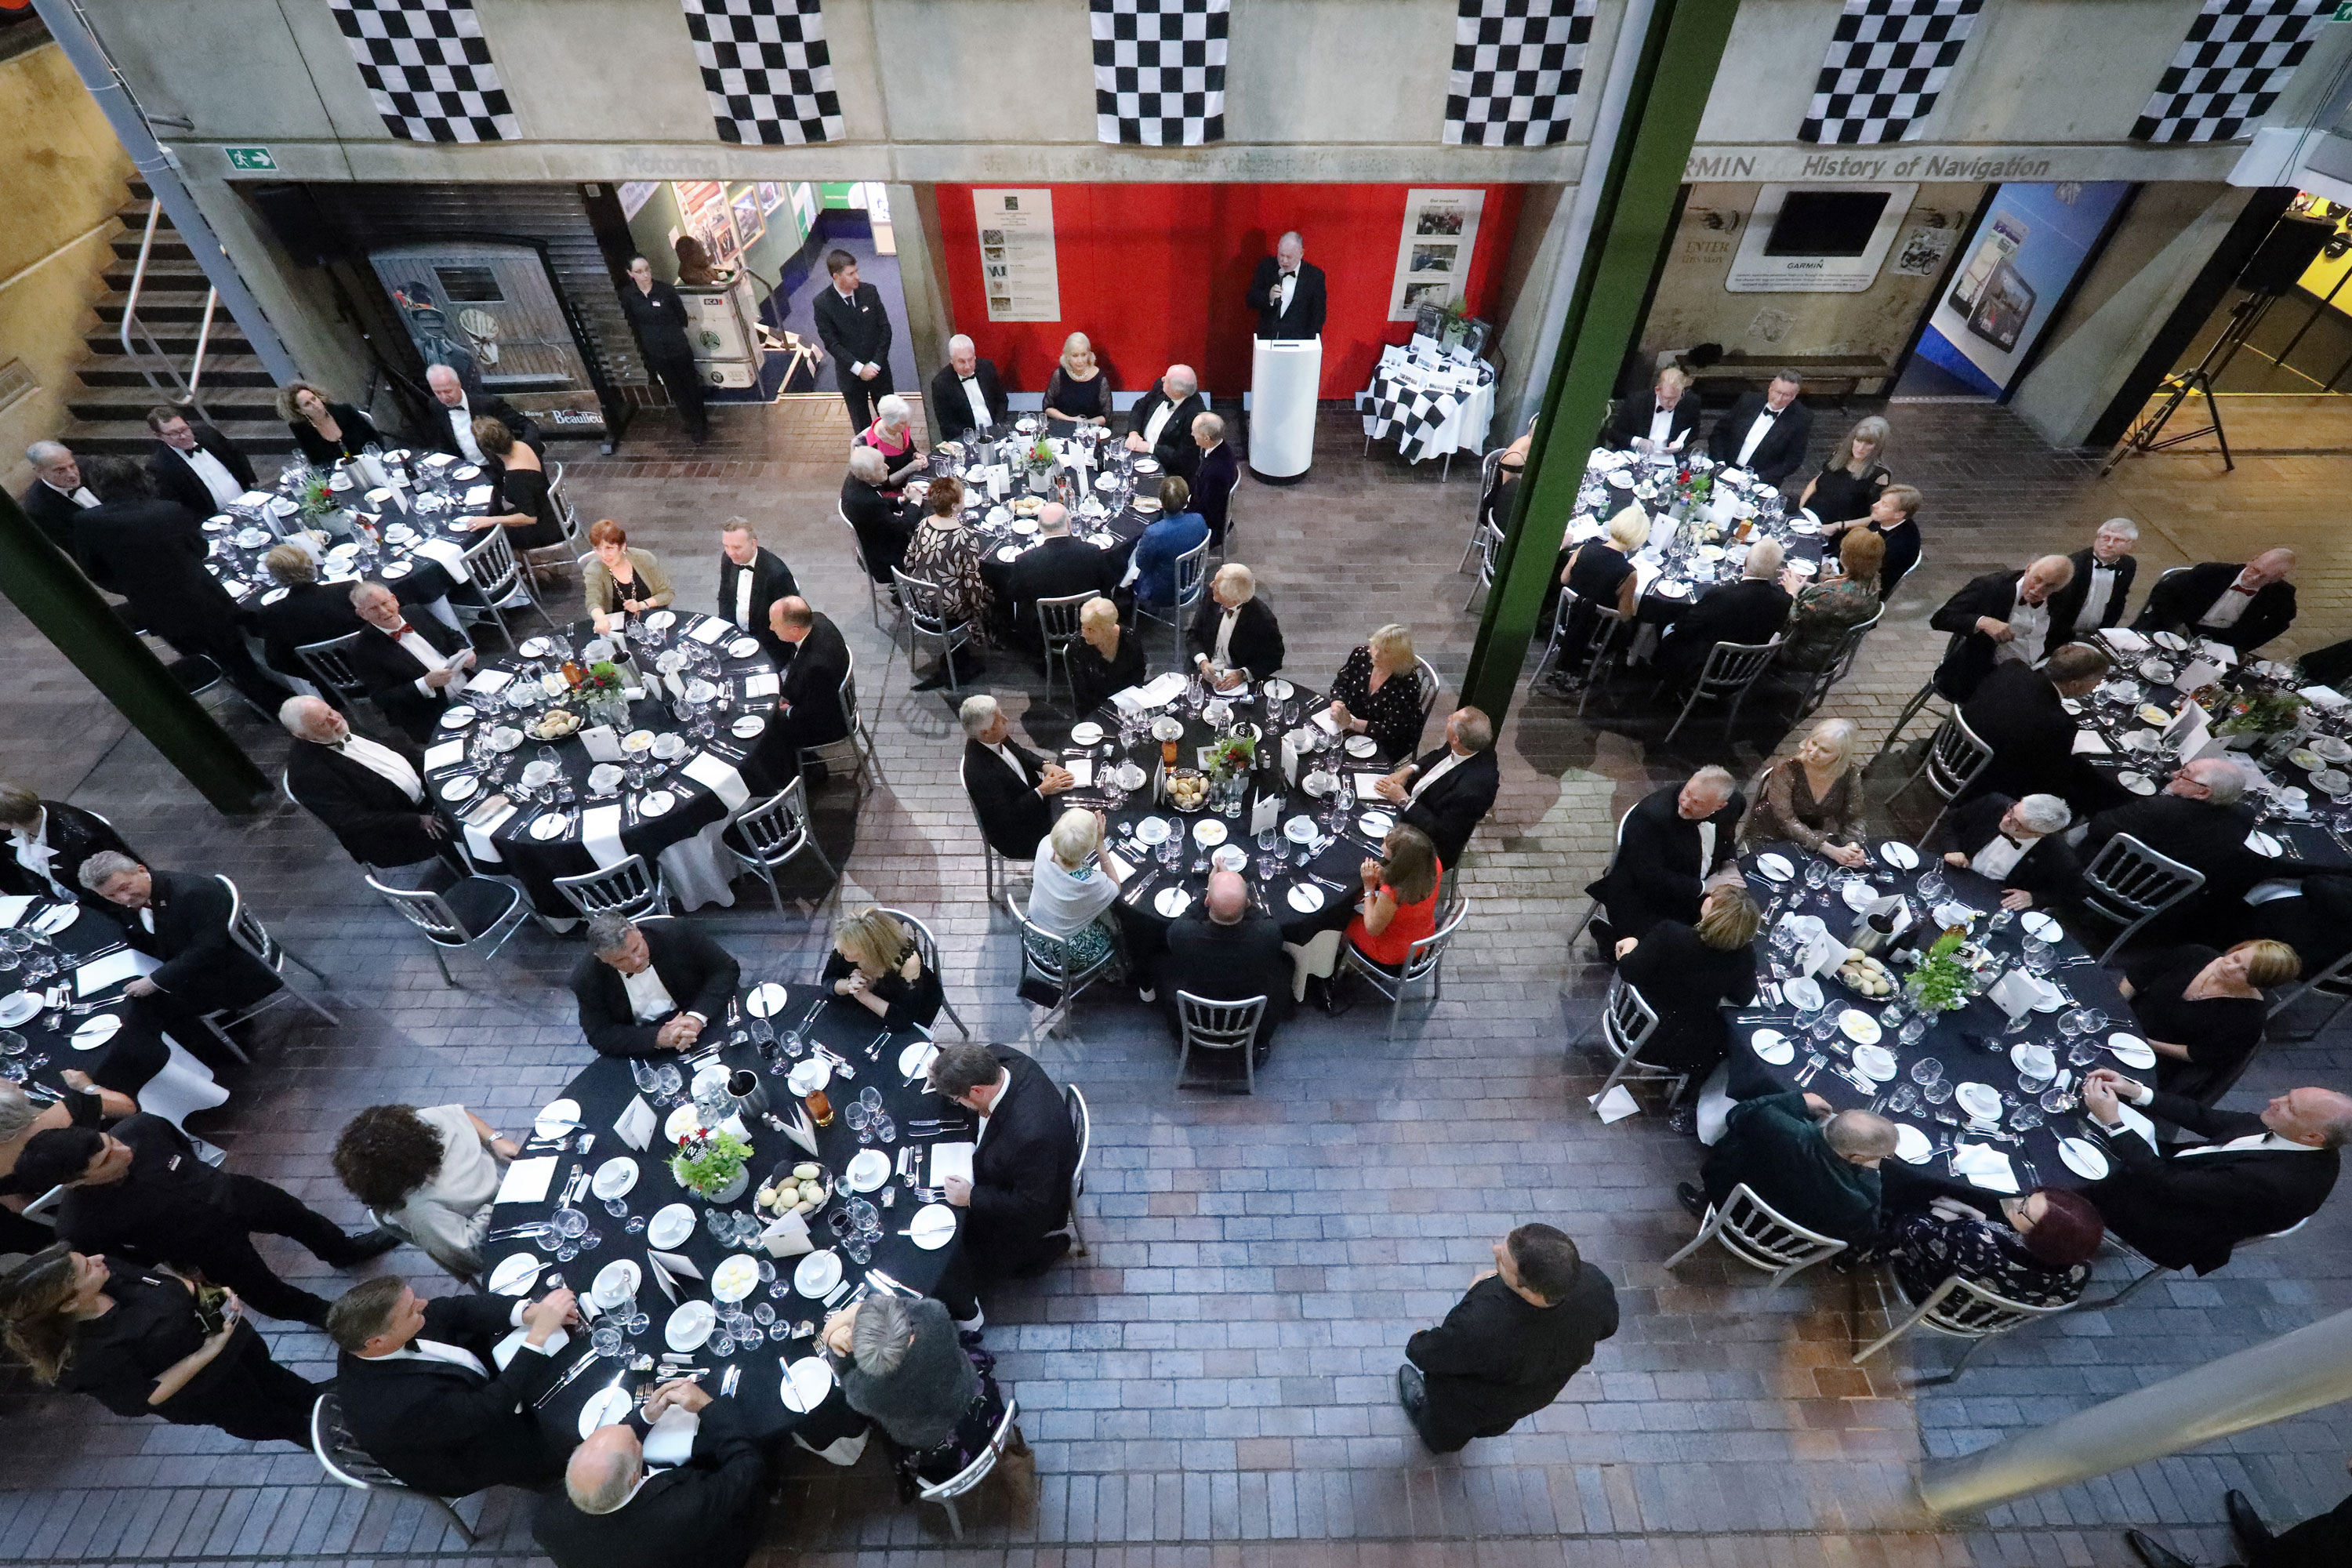 B100 dinner 2019 guests seated at table